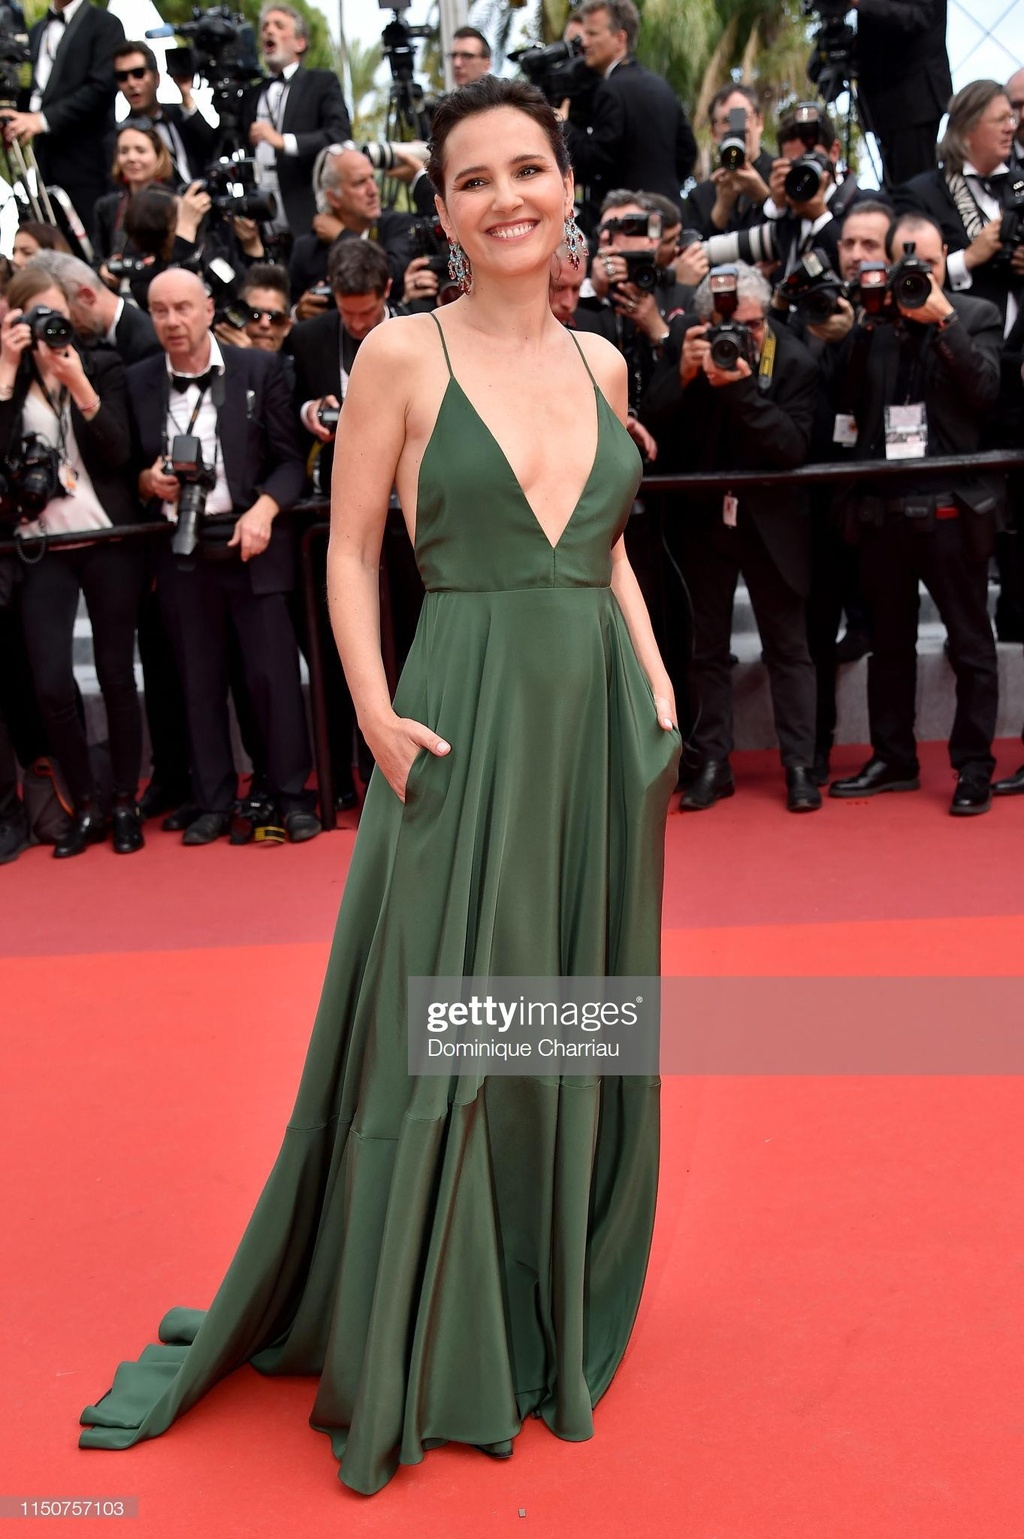 Lien hoan phim Cannes 2019 anh 9